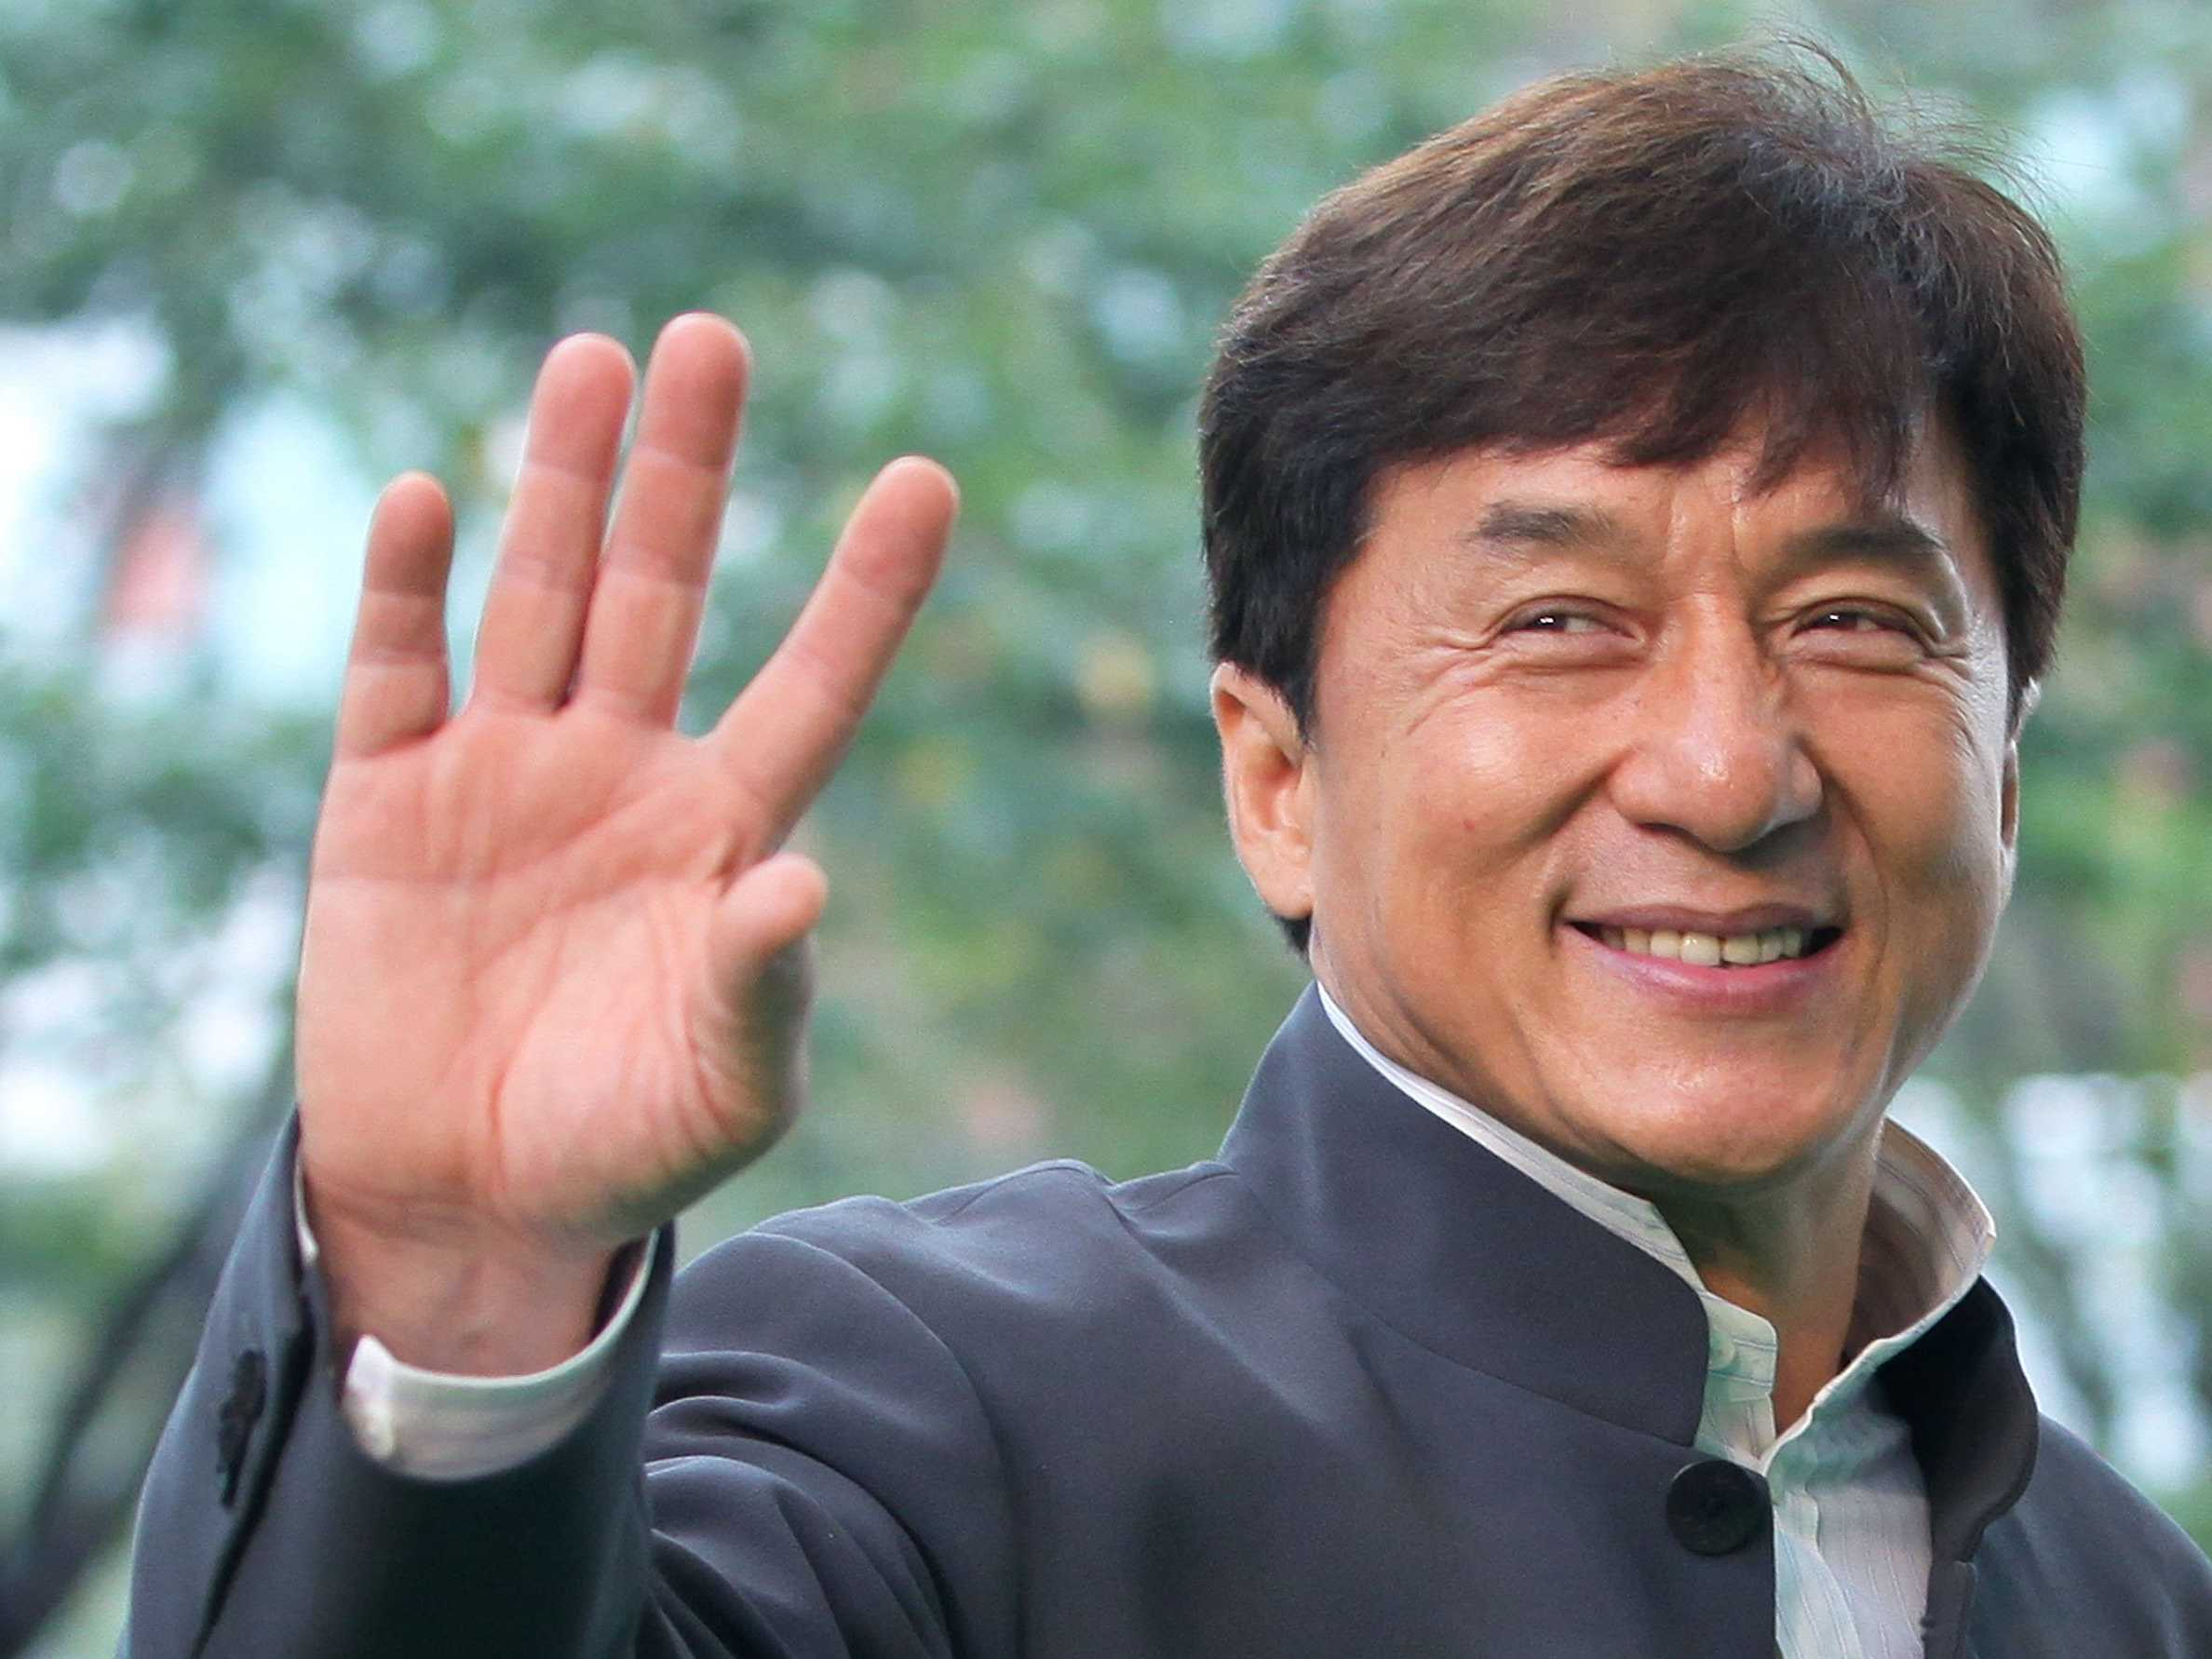 jackie-chan-would-really-like-to-see-some-countries-have-a-disaster